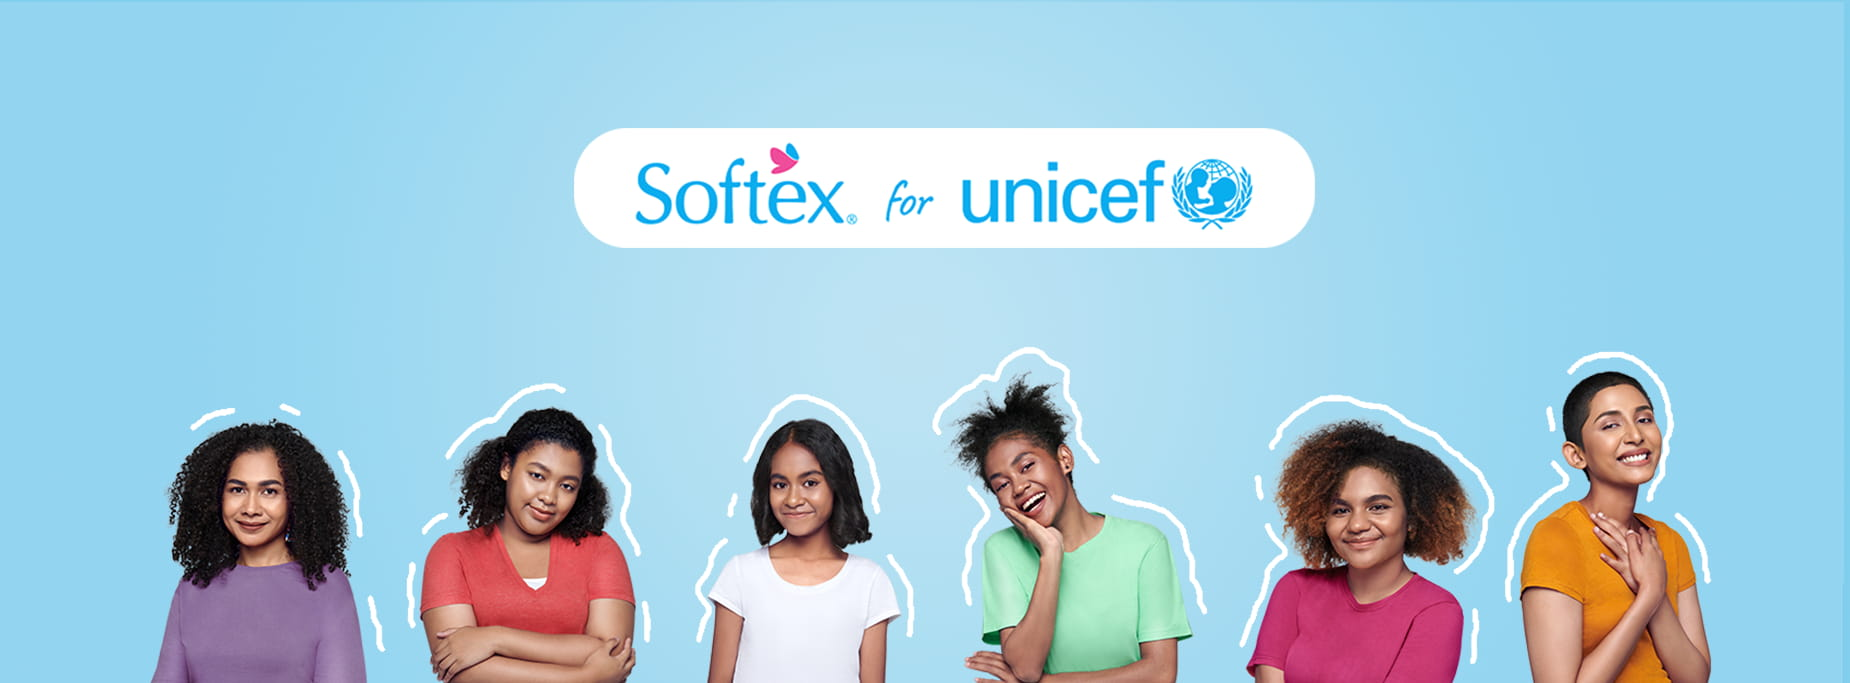 SOFTEX FOR UNICEF Banner